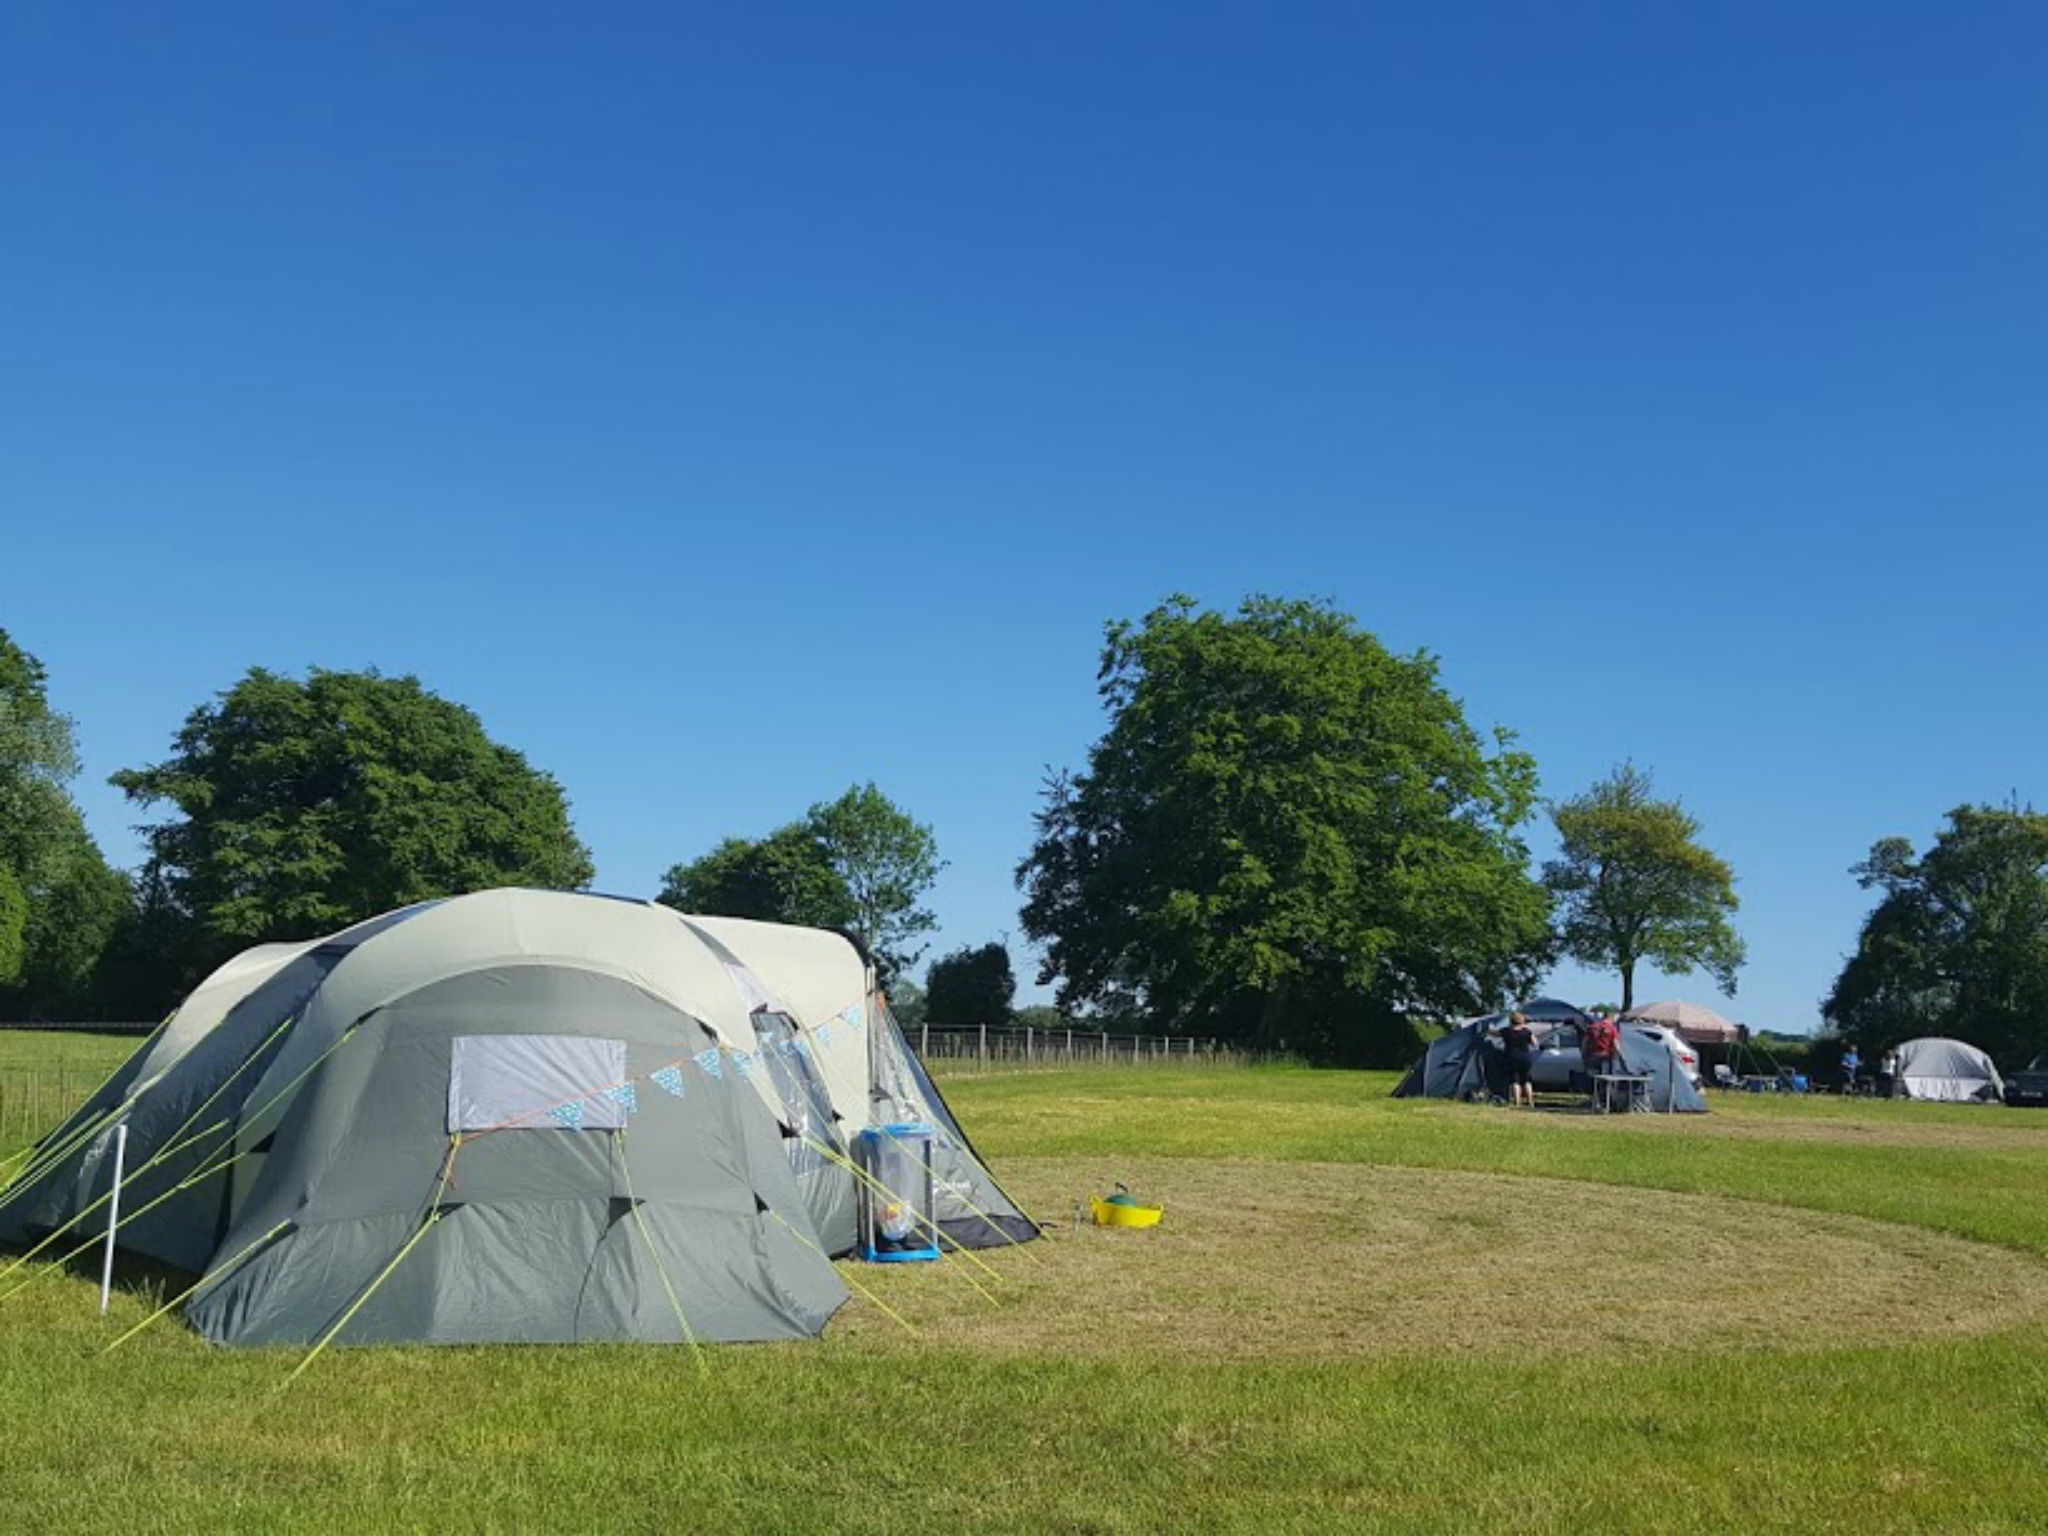 Tent in Grassy Field & Best Camping Near London | 16 Gorgeous Campsites Near London To ...